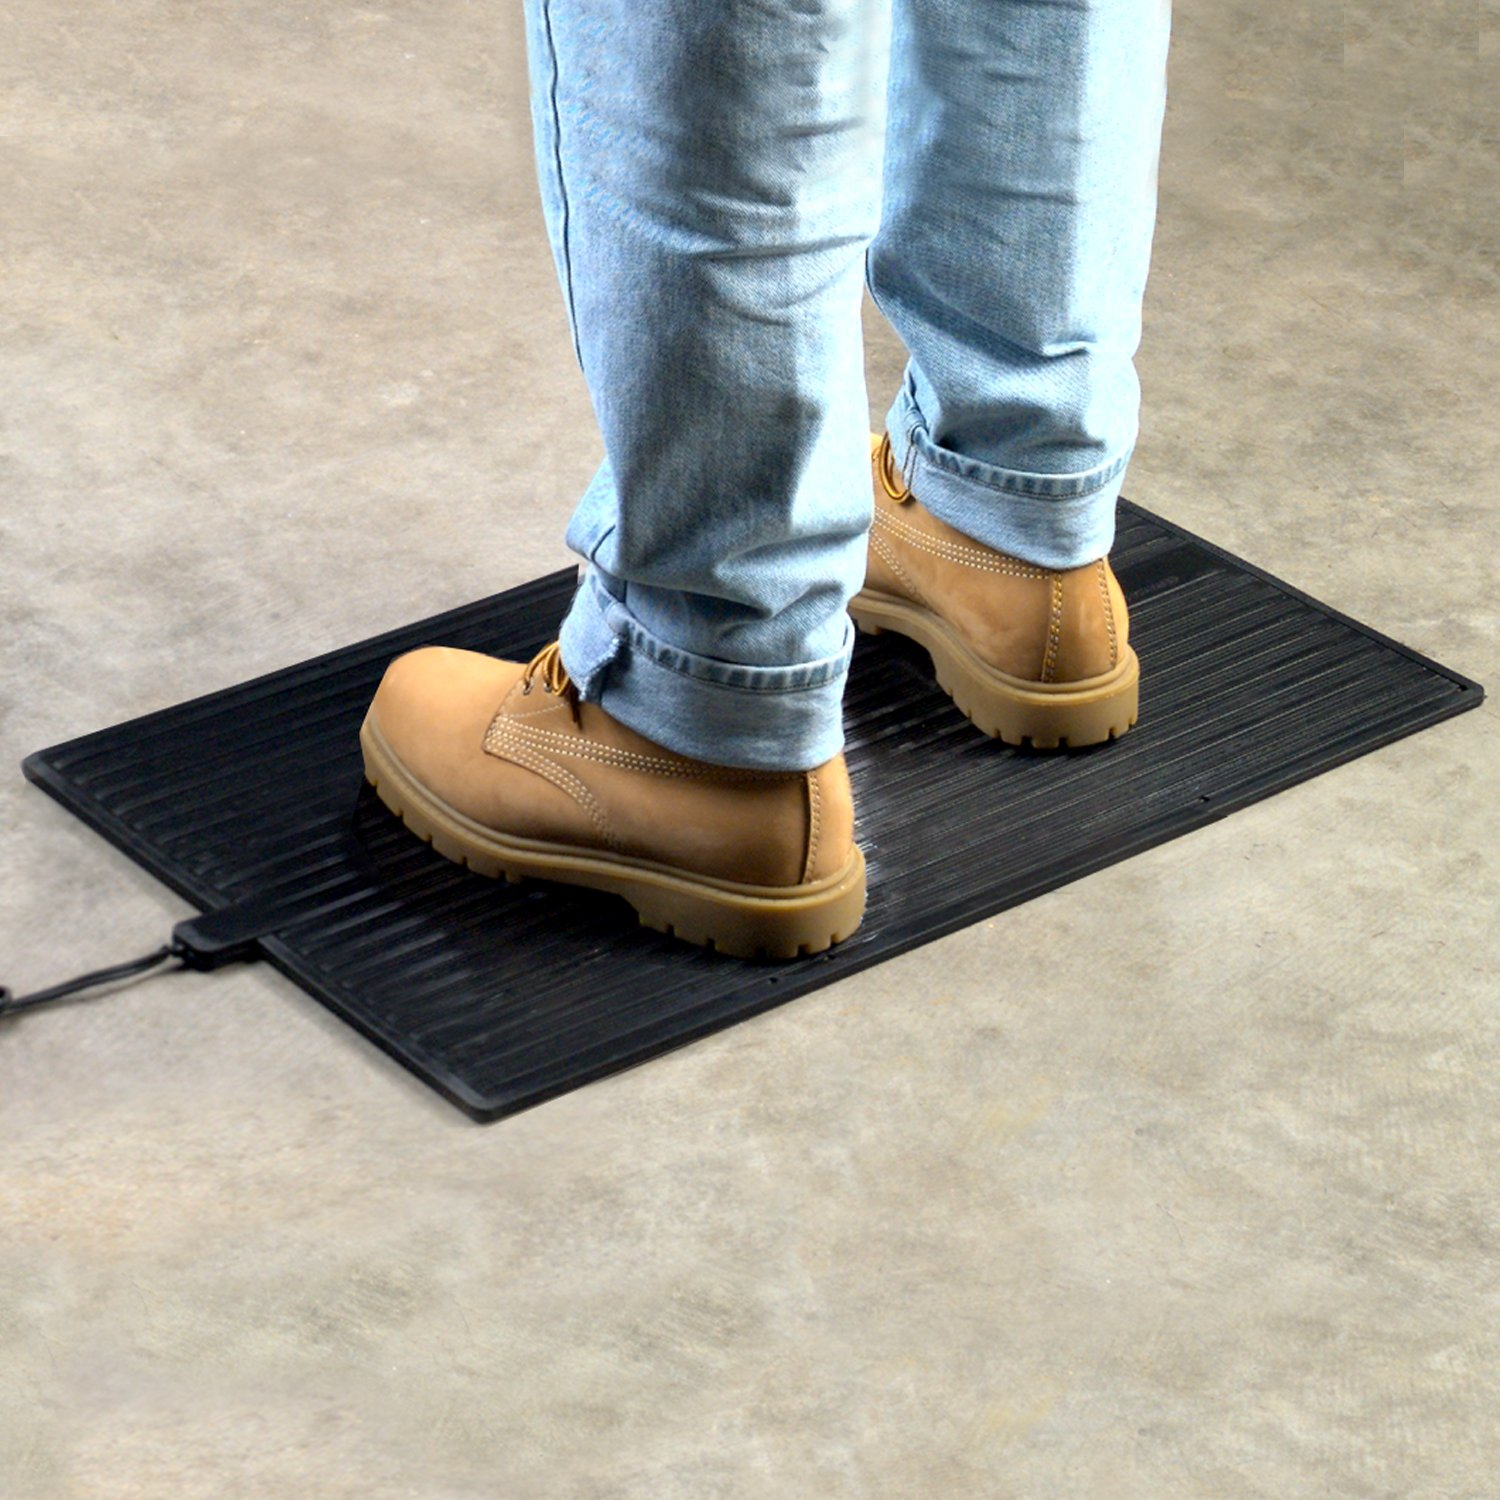 Floor mats cost - Amazon Com Cozy Products Fw Foot Warmer Heated Foot Warming Mat Rubber Design Home Kitchen